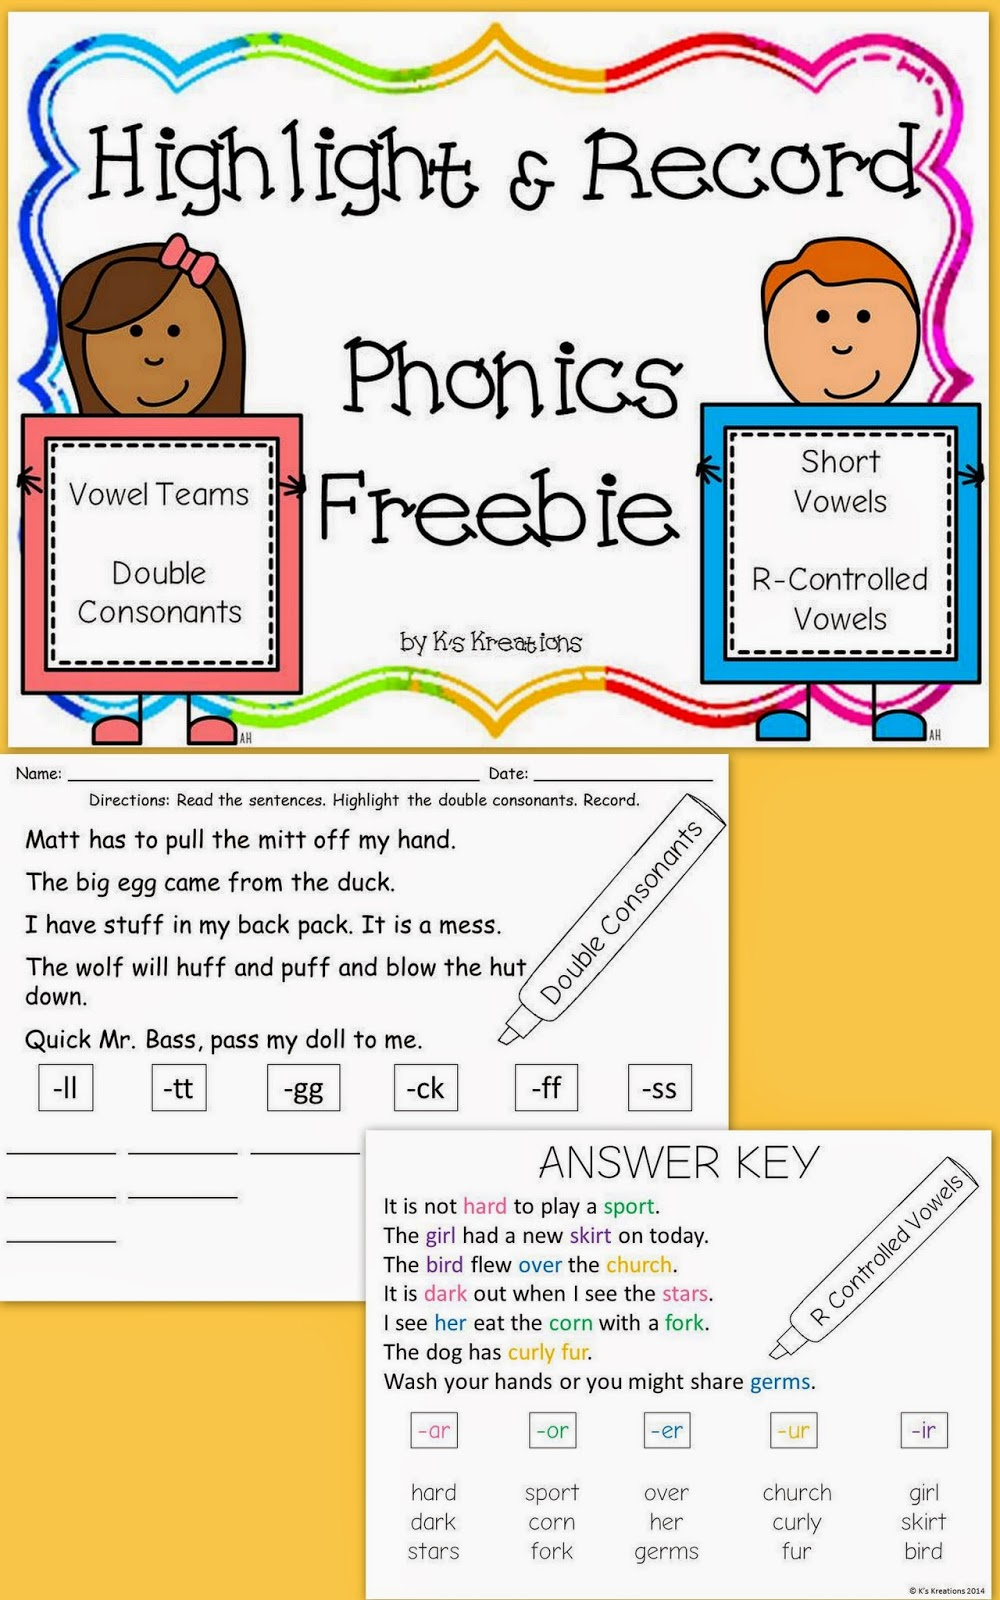 http://www.teacherspayteachers.com/Product/Highlight-Record-Phonics-Freebie-1037494